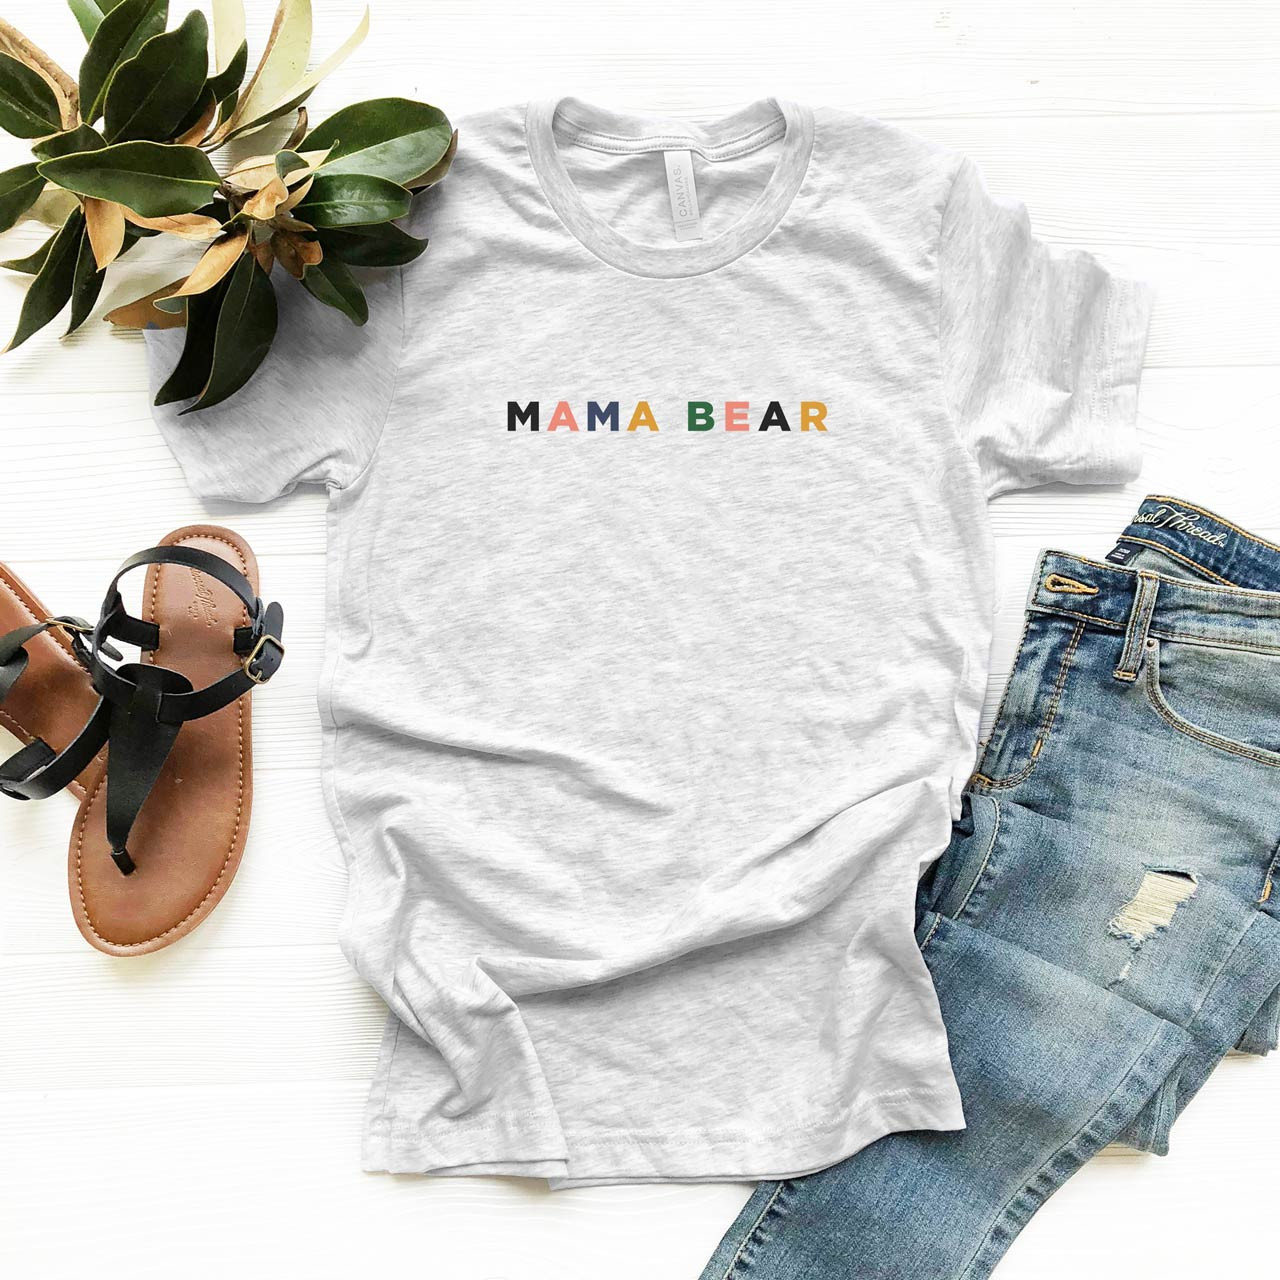 MAMA BEAR Vintage T-Shirt (Color on Light Gray Fleck) from The Printed Home